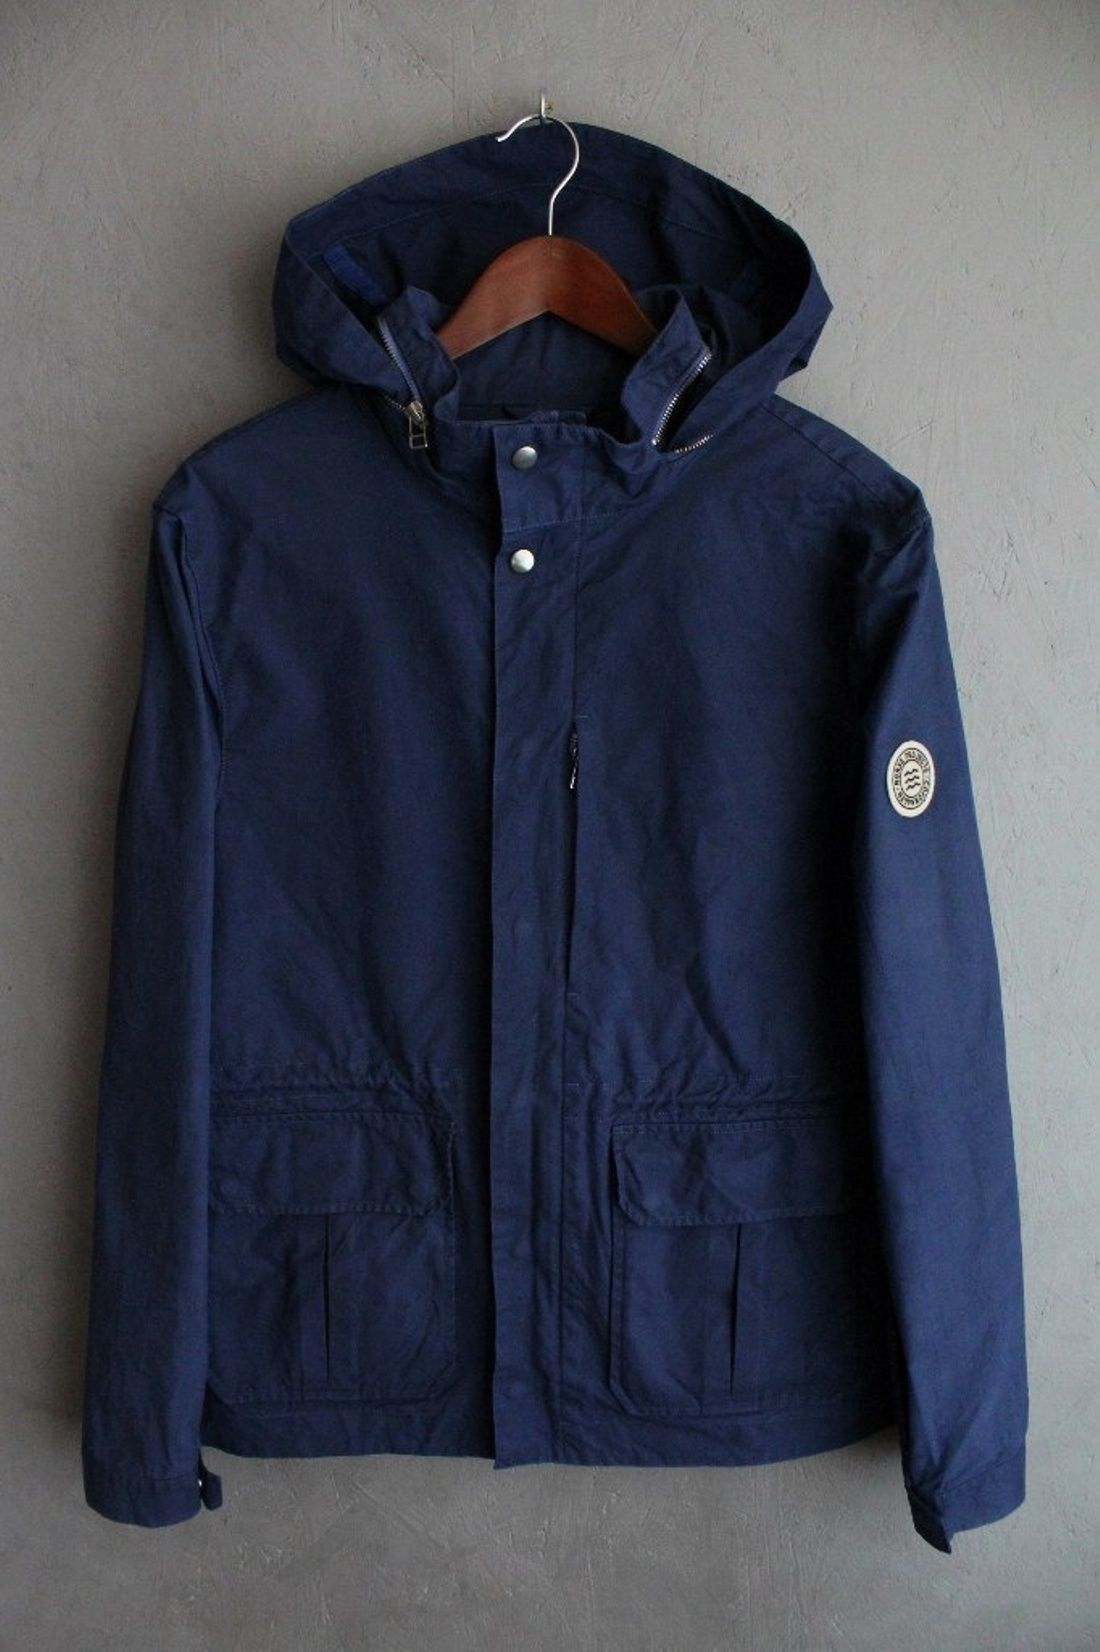 Norse Projects Classic Blue Jacket Size S $161 - Grailed